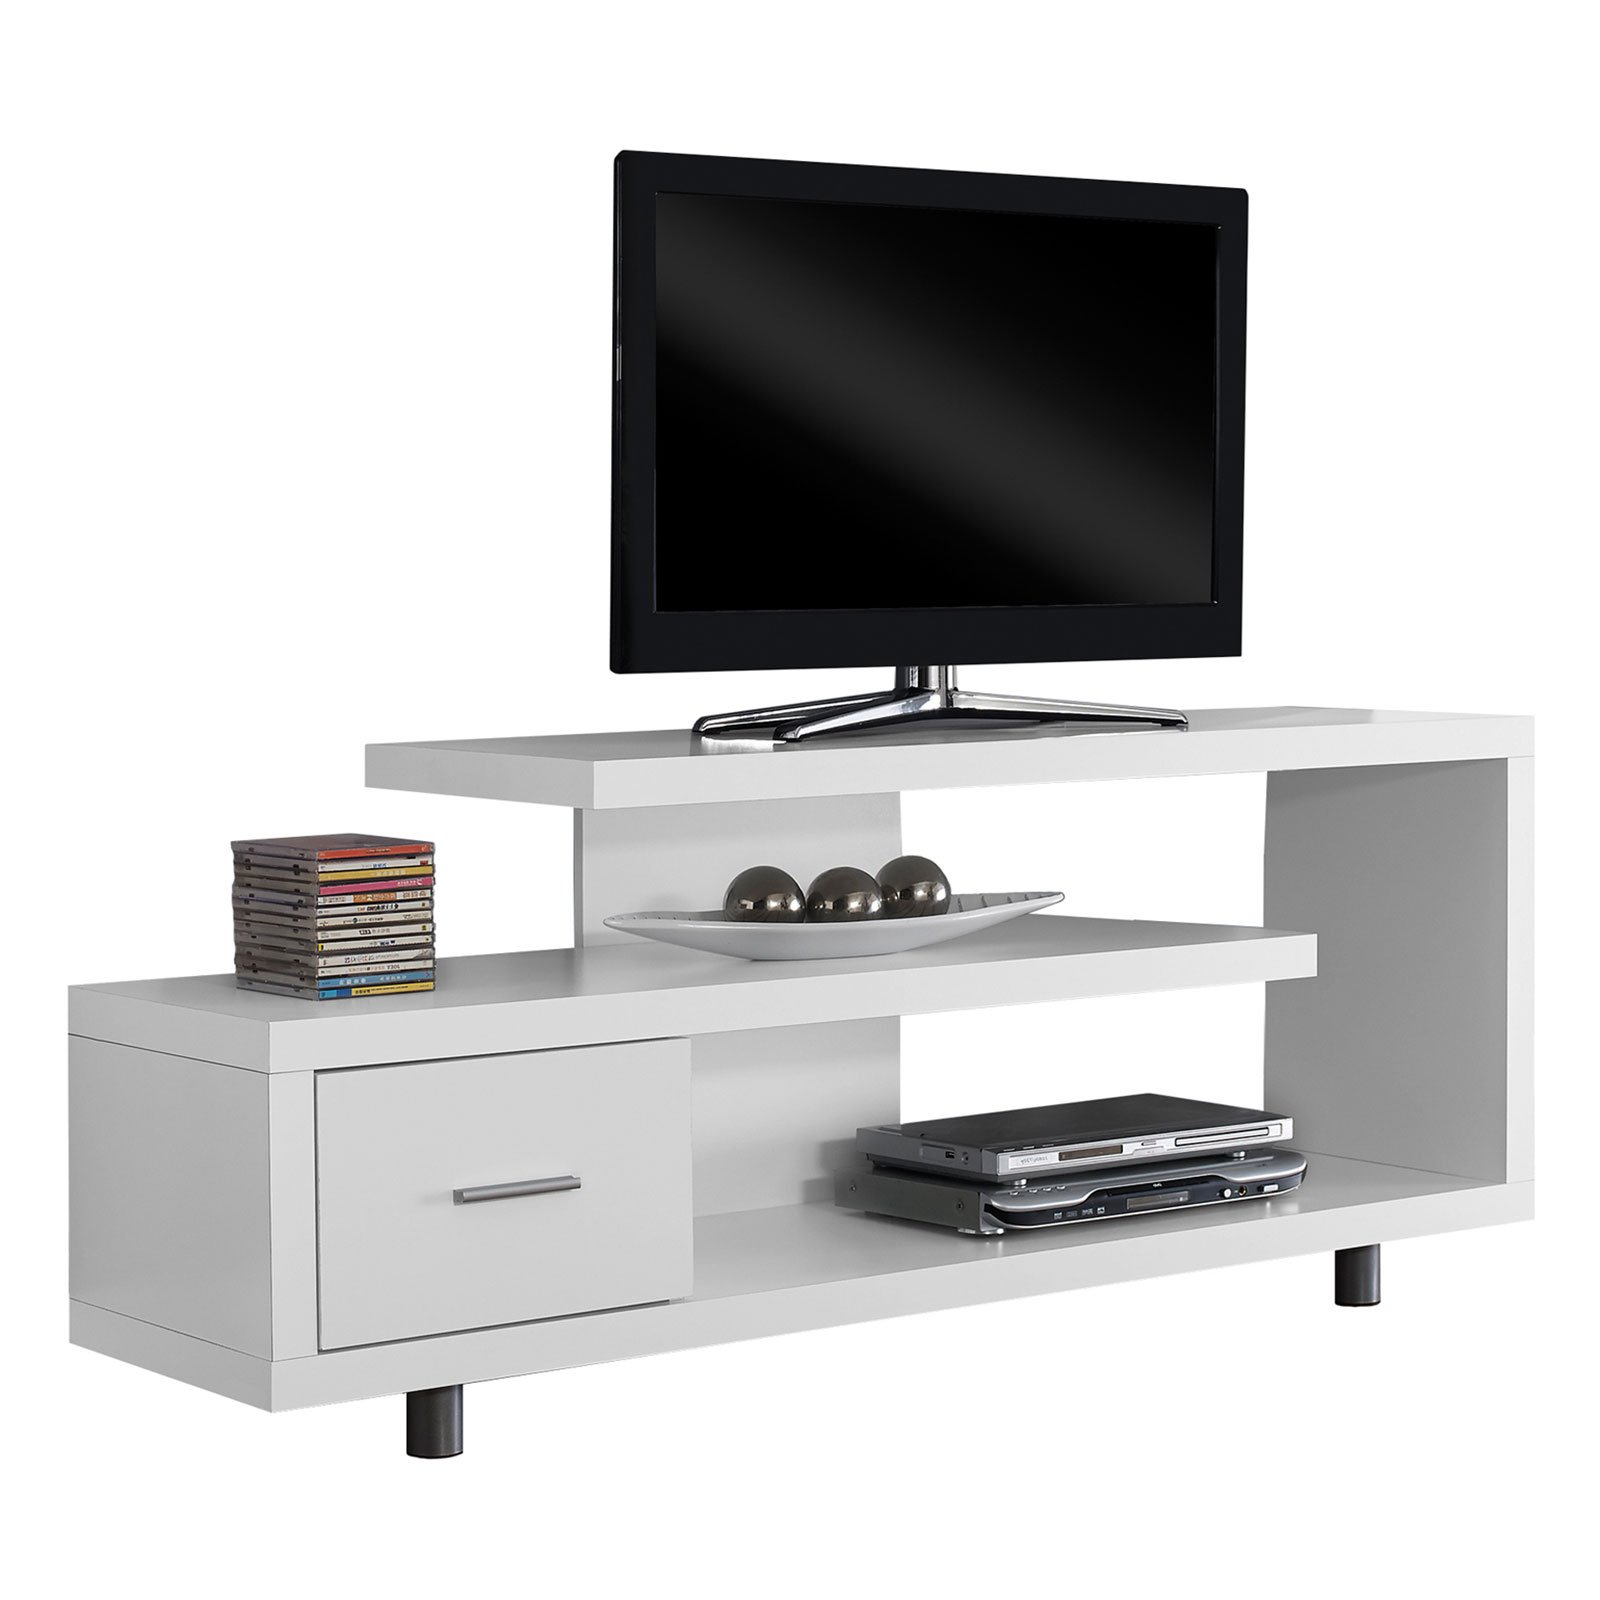 "Well Liked Monarch Tv Stand White With 1 Drawer For Tvs Up To 47""l – Walmart Pertaining To Maddy 50 Inch Tv Stands (View 20 of 20)"